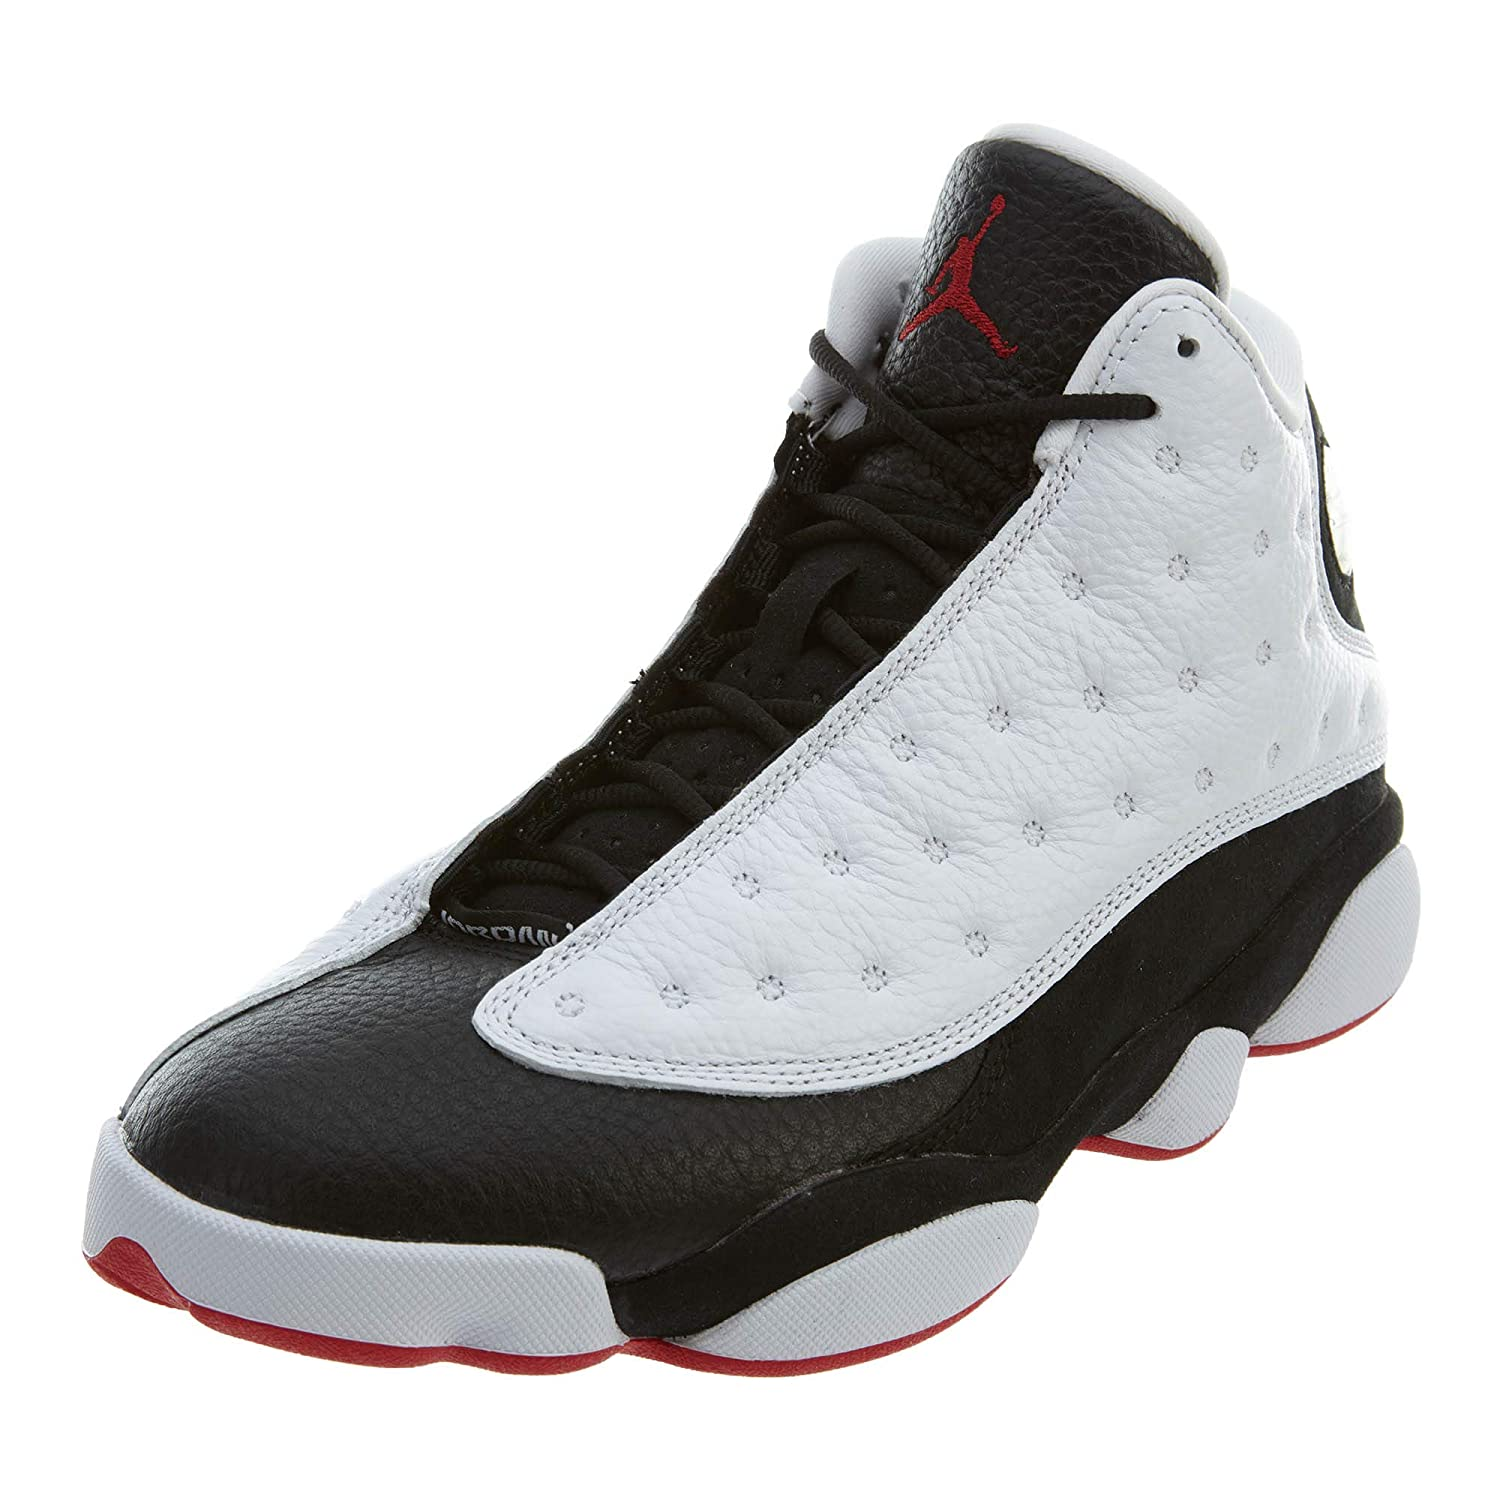 huge discount f9195 24911 Amazon.com   Air Jordan 13 Retro He Got Game Men s Shoes White True  red Black 414571-104 (11.5 D(M) US)   Basketball